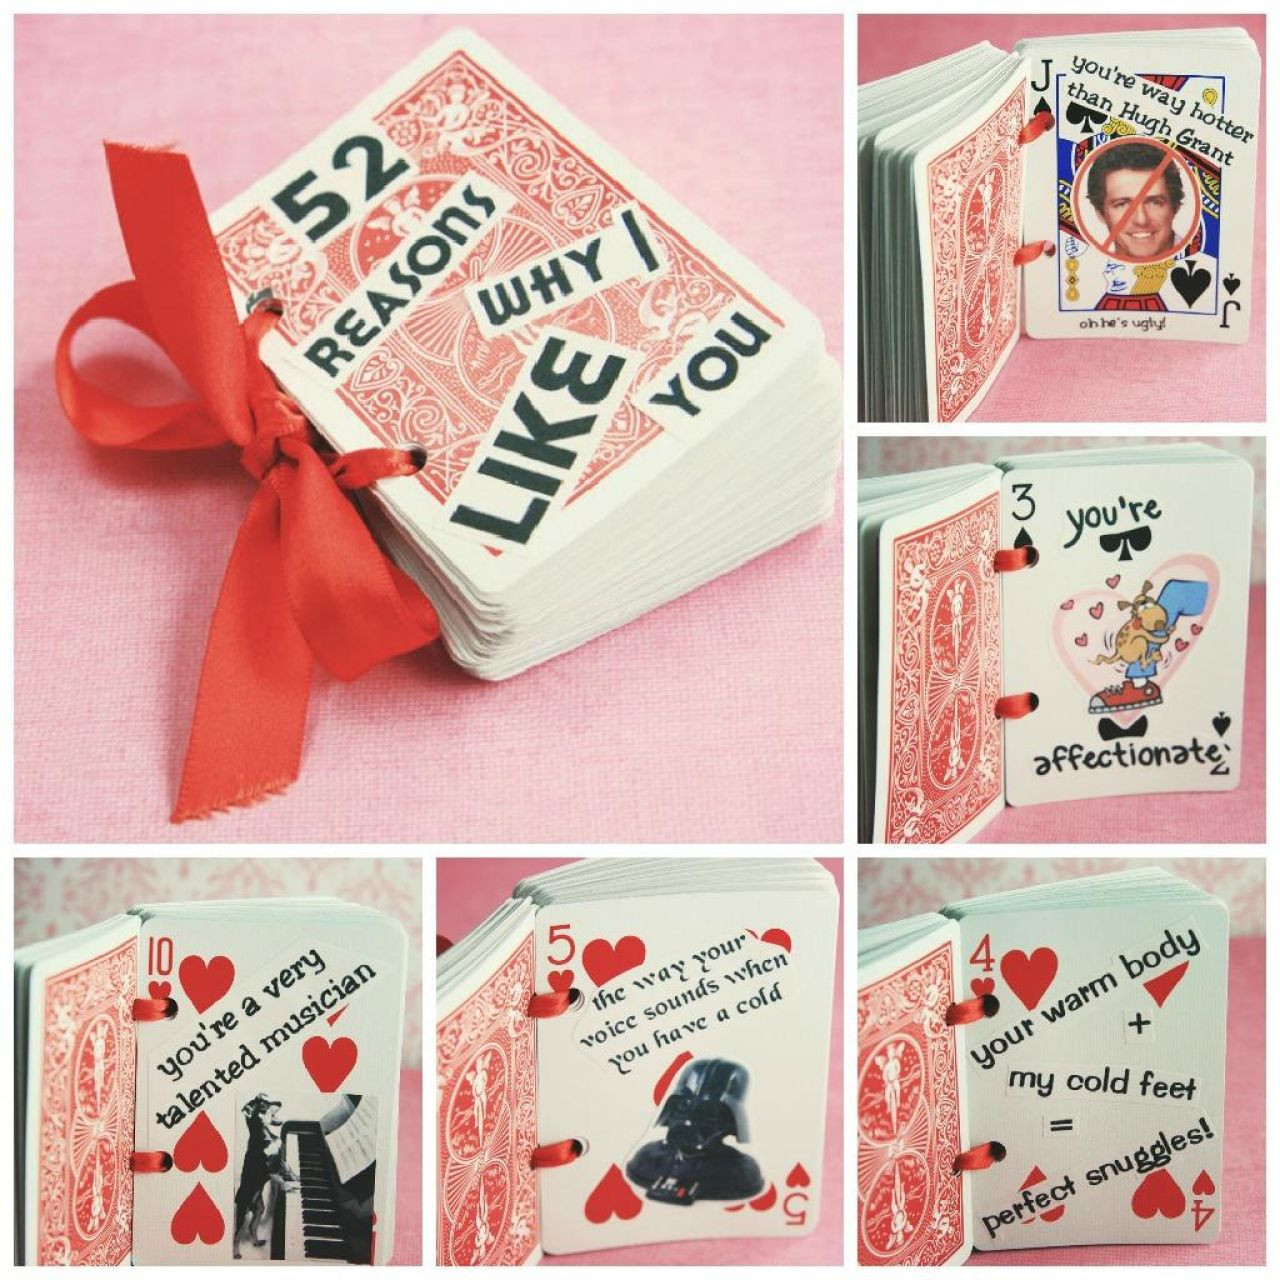 Valentine Day Gift Ideas For Him  17 Last Minute Handmade Valentine Gifts for Him